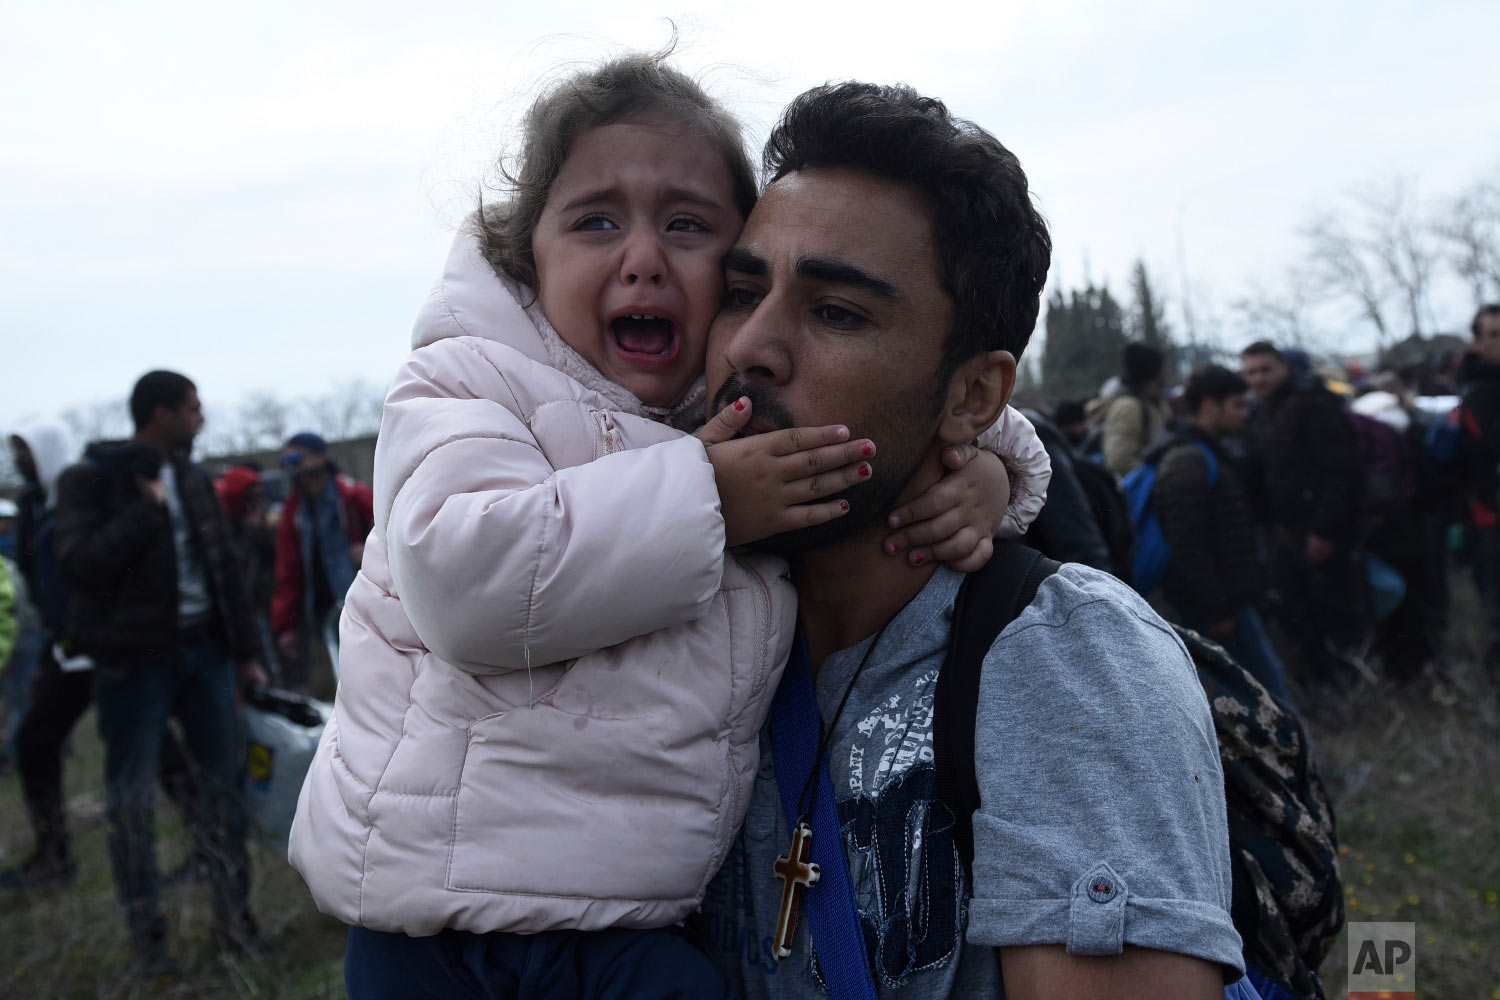 A man holds a crying girl as riot police use tear gas during clashes outside a refugee camp in the village of Diavata, west of Thessaloniki, northern Greece, Friday, April 5, 2019. (AP Photo/Giannis Papanikos)